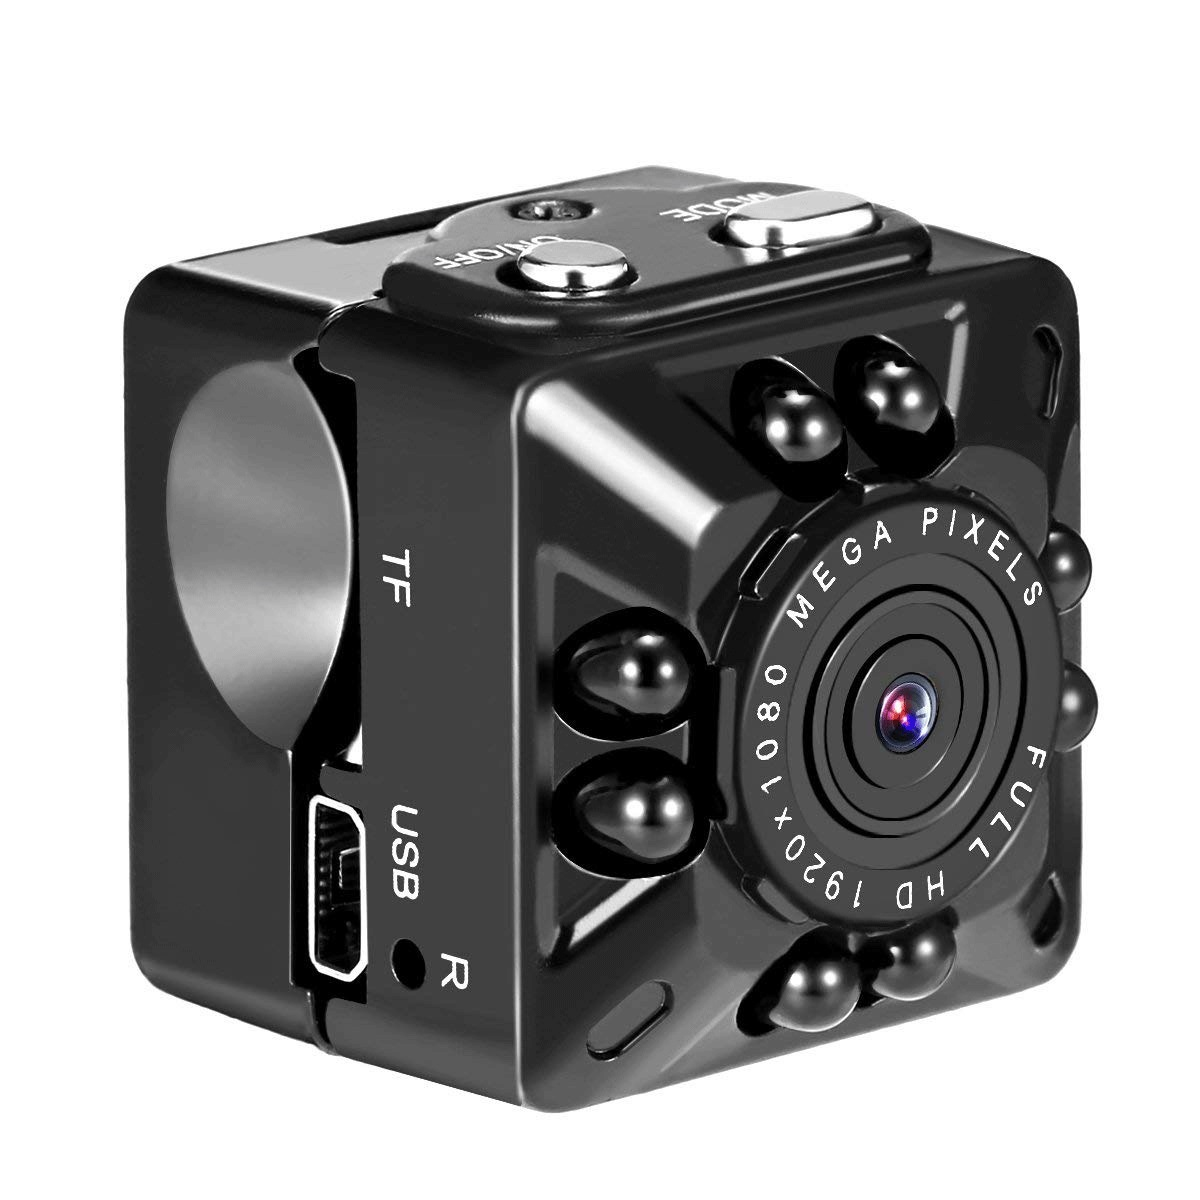 [EU Direct] Security Camera Full HD 1080P Motion Detection Night Vision Recorder  black